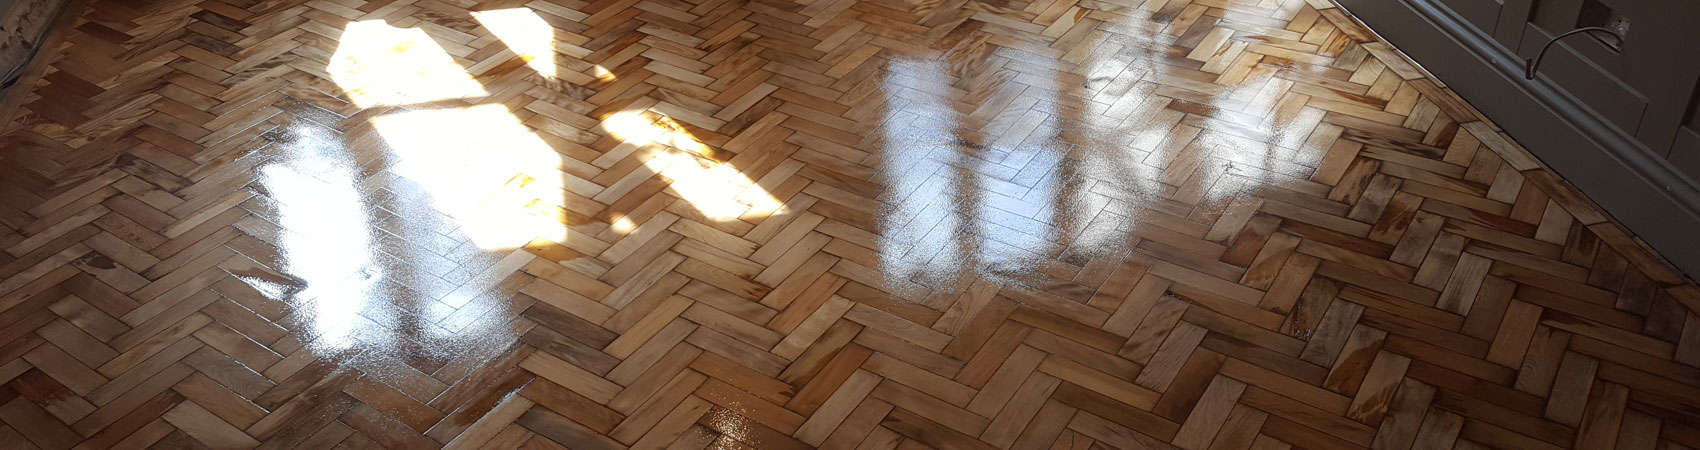 Parquet Floor Cleaned Sanded Coated Still Wet